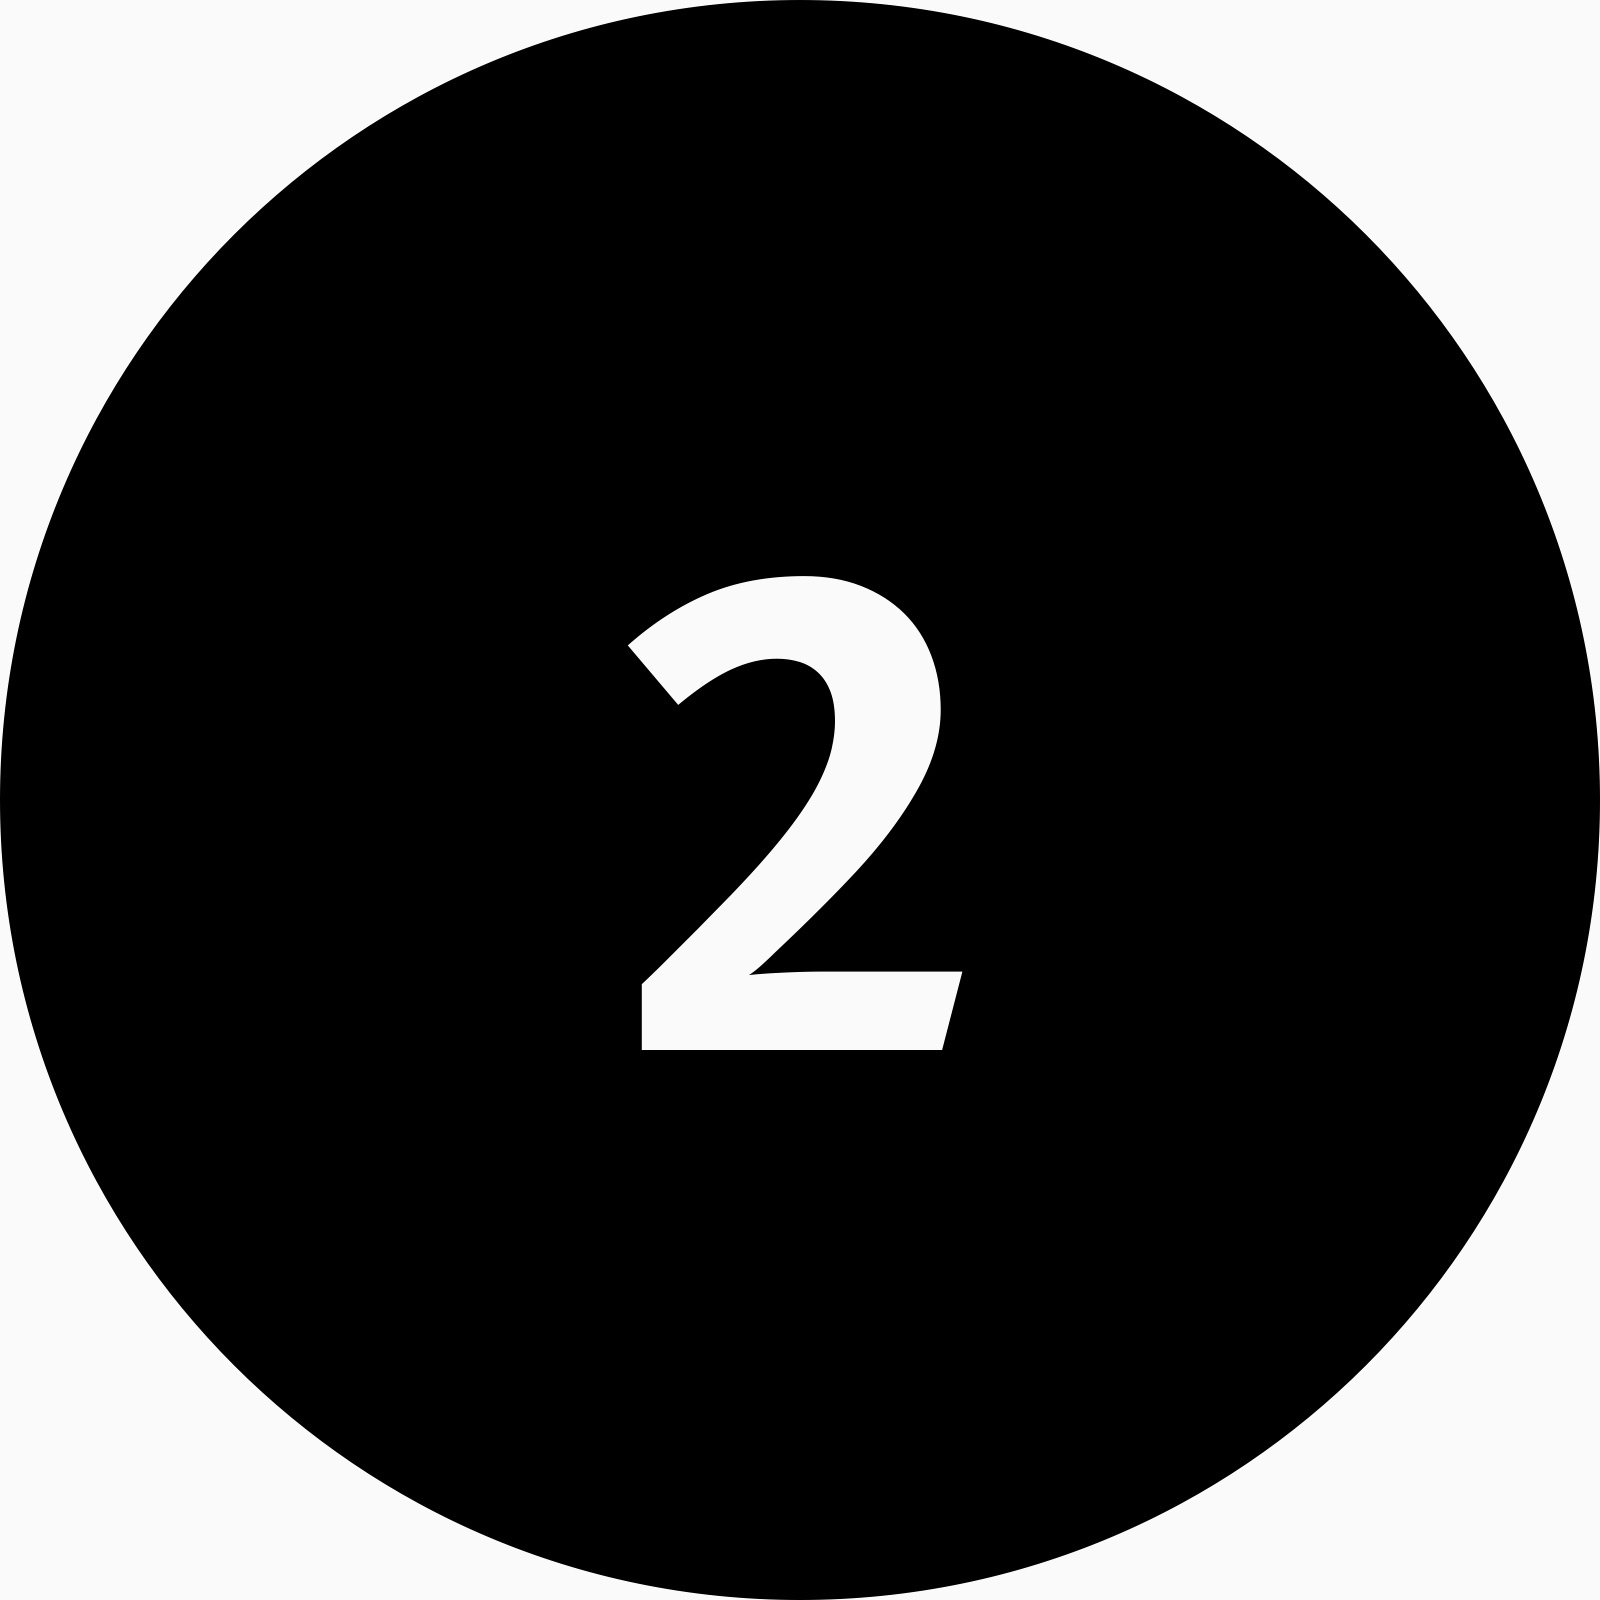 A black circle icon with the number two inside.